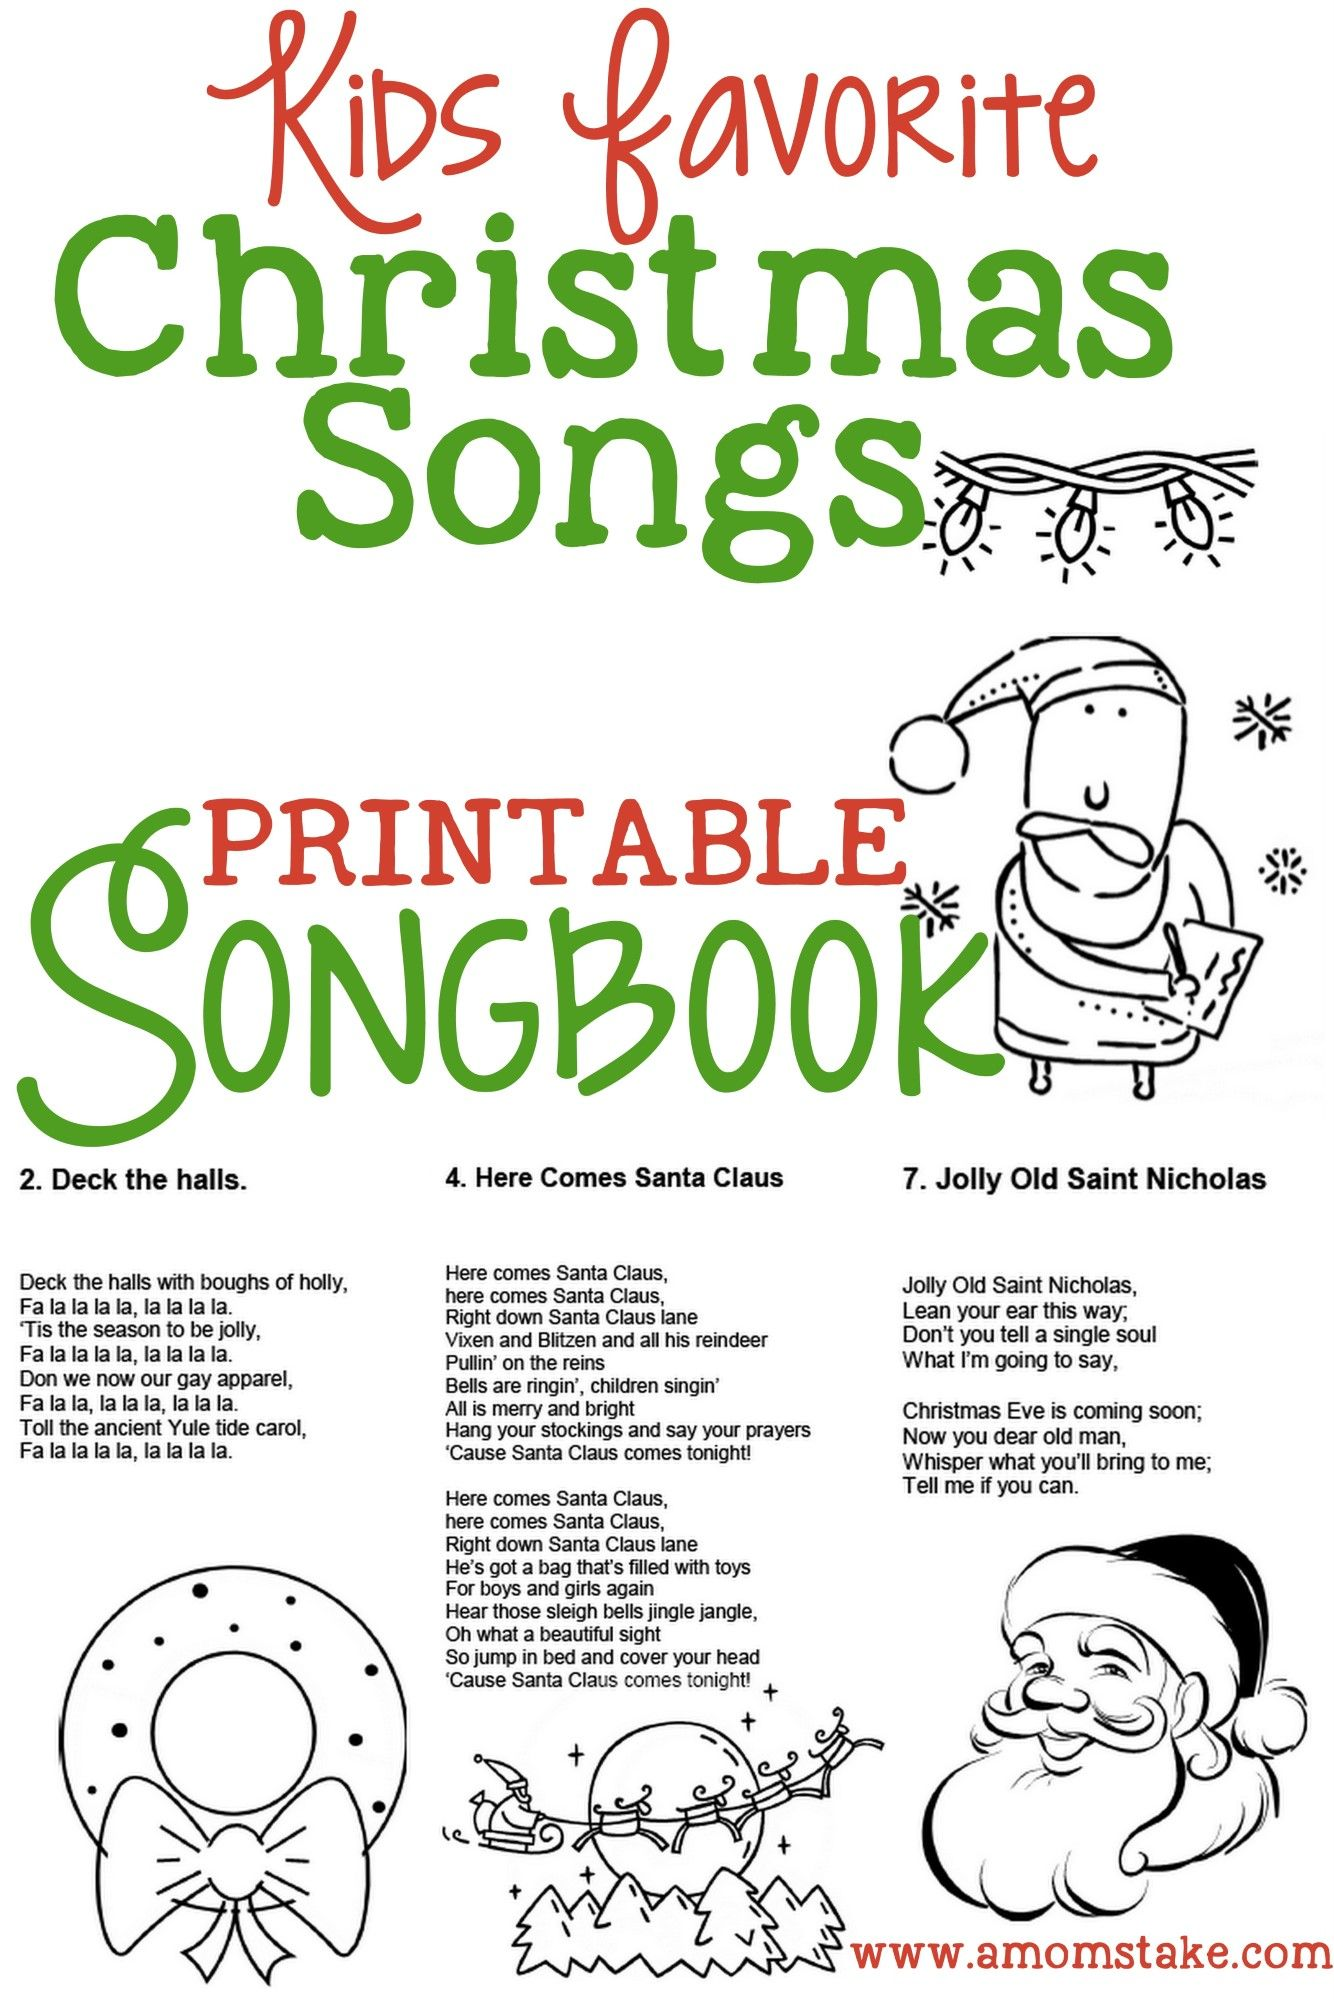 christmas songs for kids free printable songbook a coloring book and songbook in one - Kid Free Books